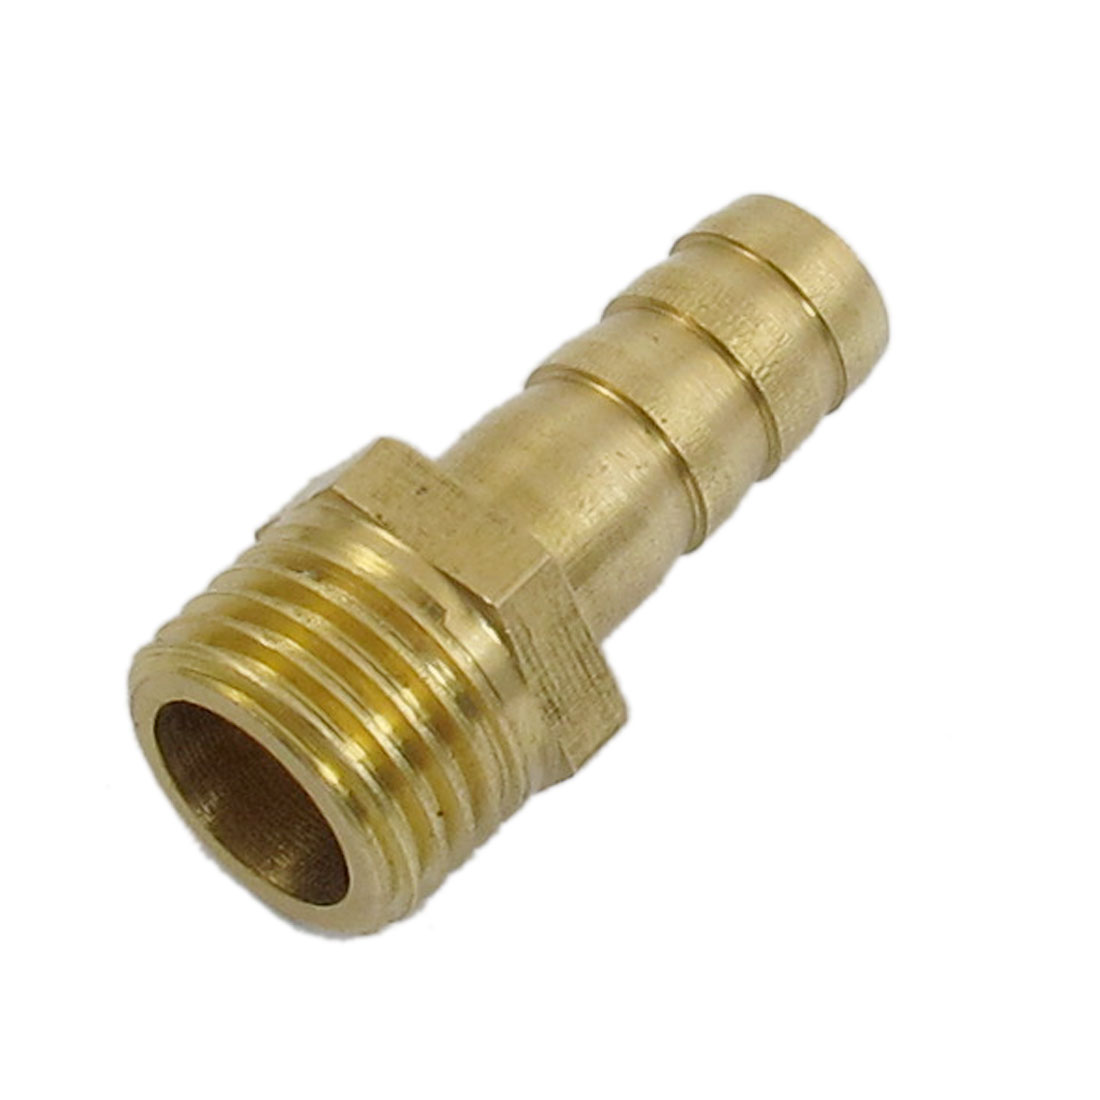 8mm x 13mm Fuel Gas Hose Barb Male Thread Straight Coupling Fitting